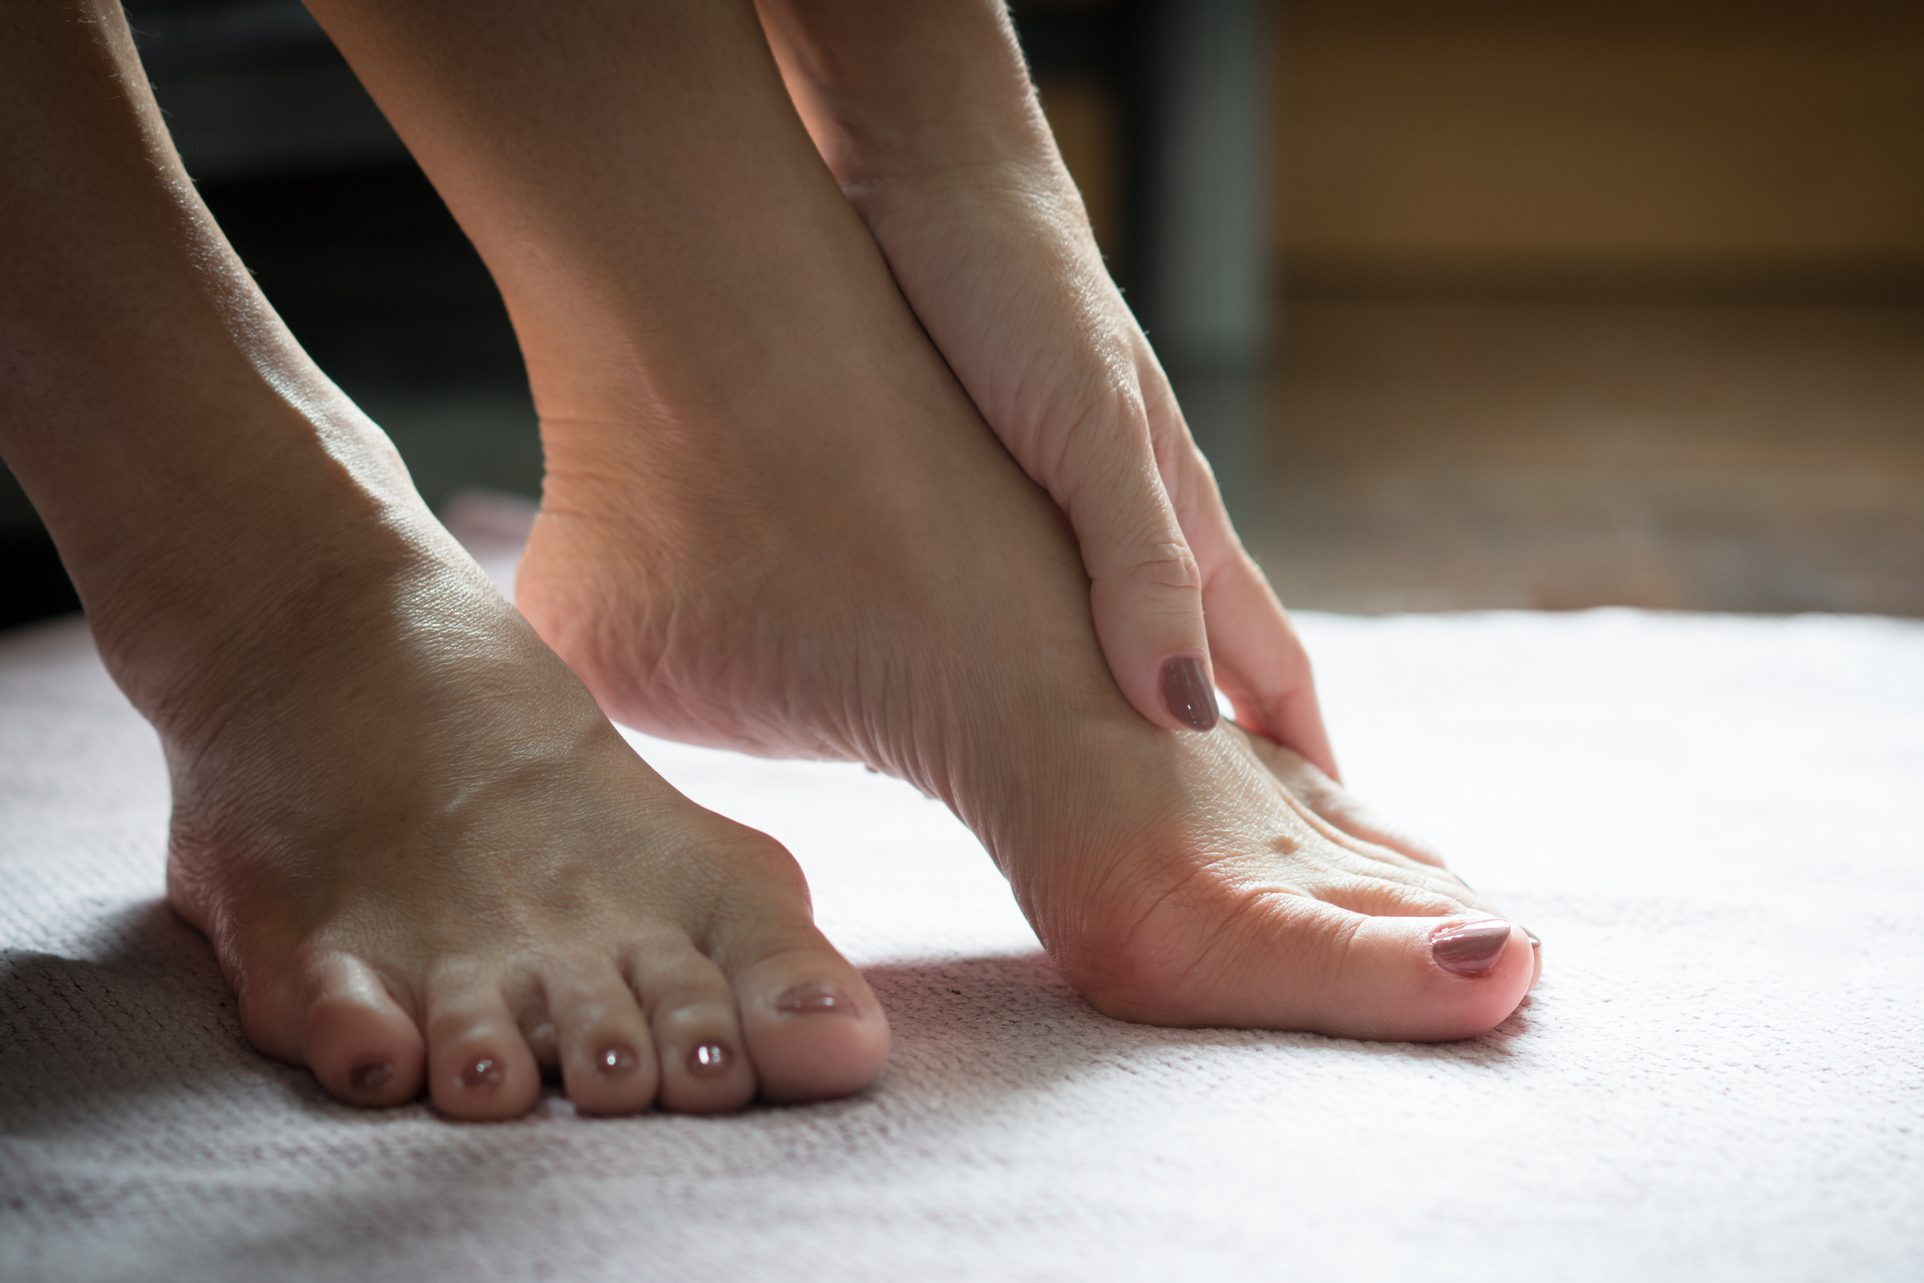 Bare feet of beautiful working woman resting her toes at home to release pain of her Bunions (Hallux valgus) toes